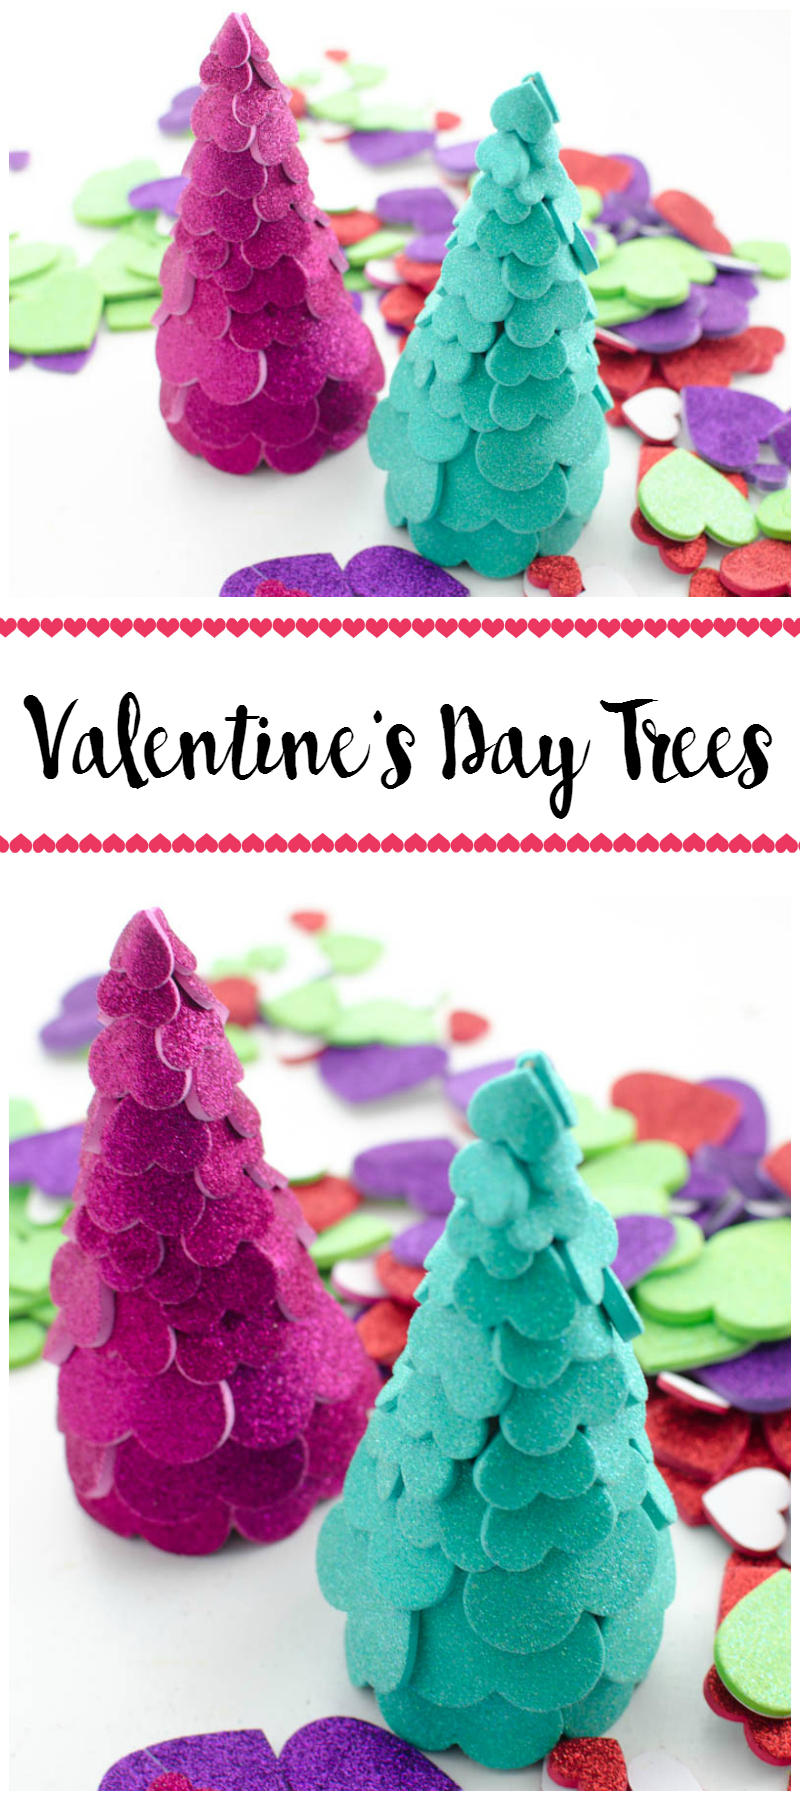 Valentine's Day Trees